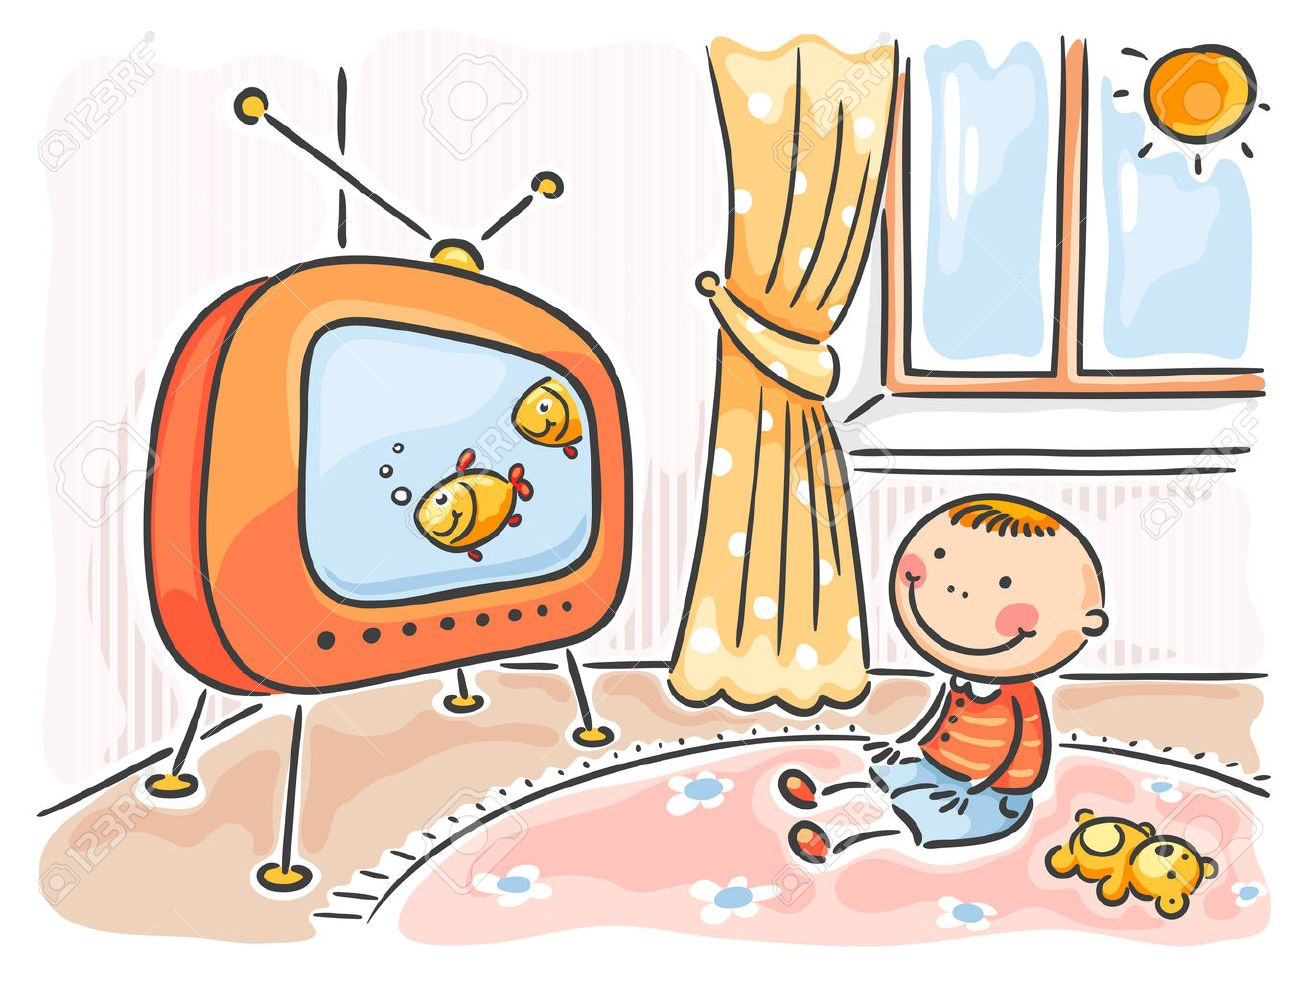 Child watching tv clipart 2 » Clipart Station.